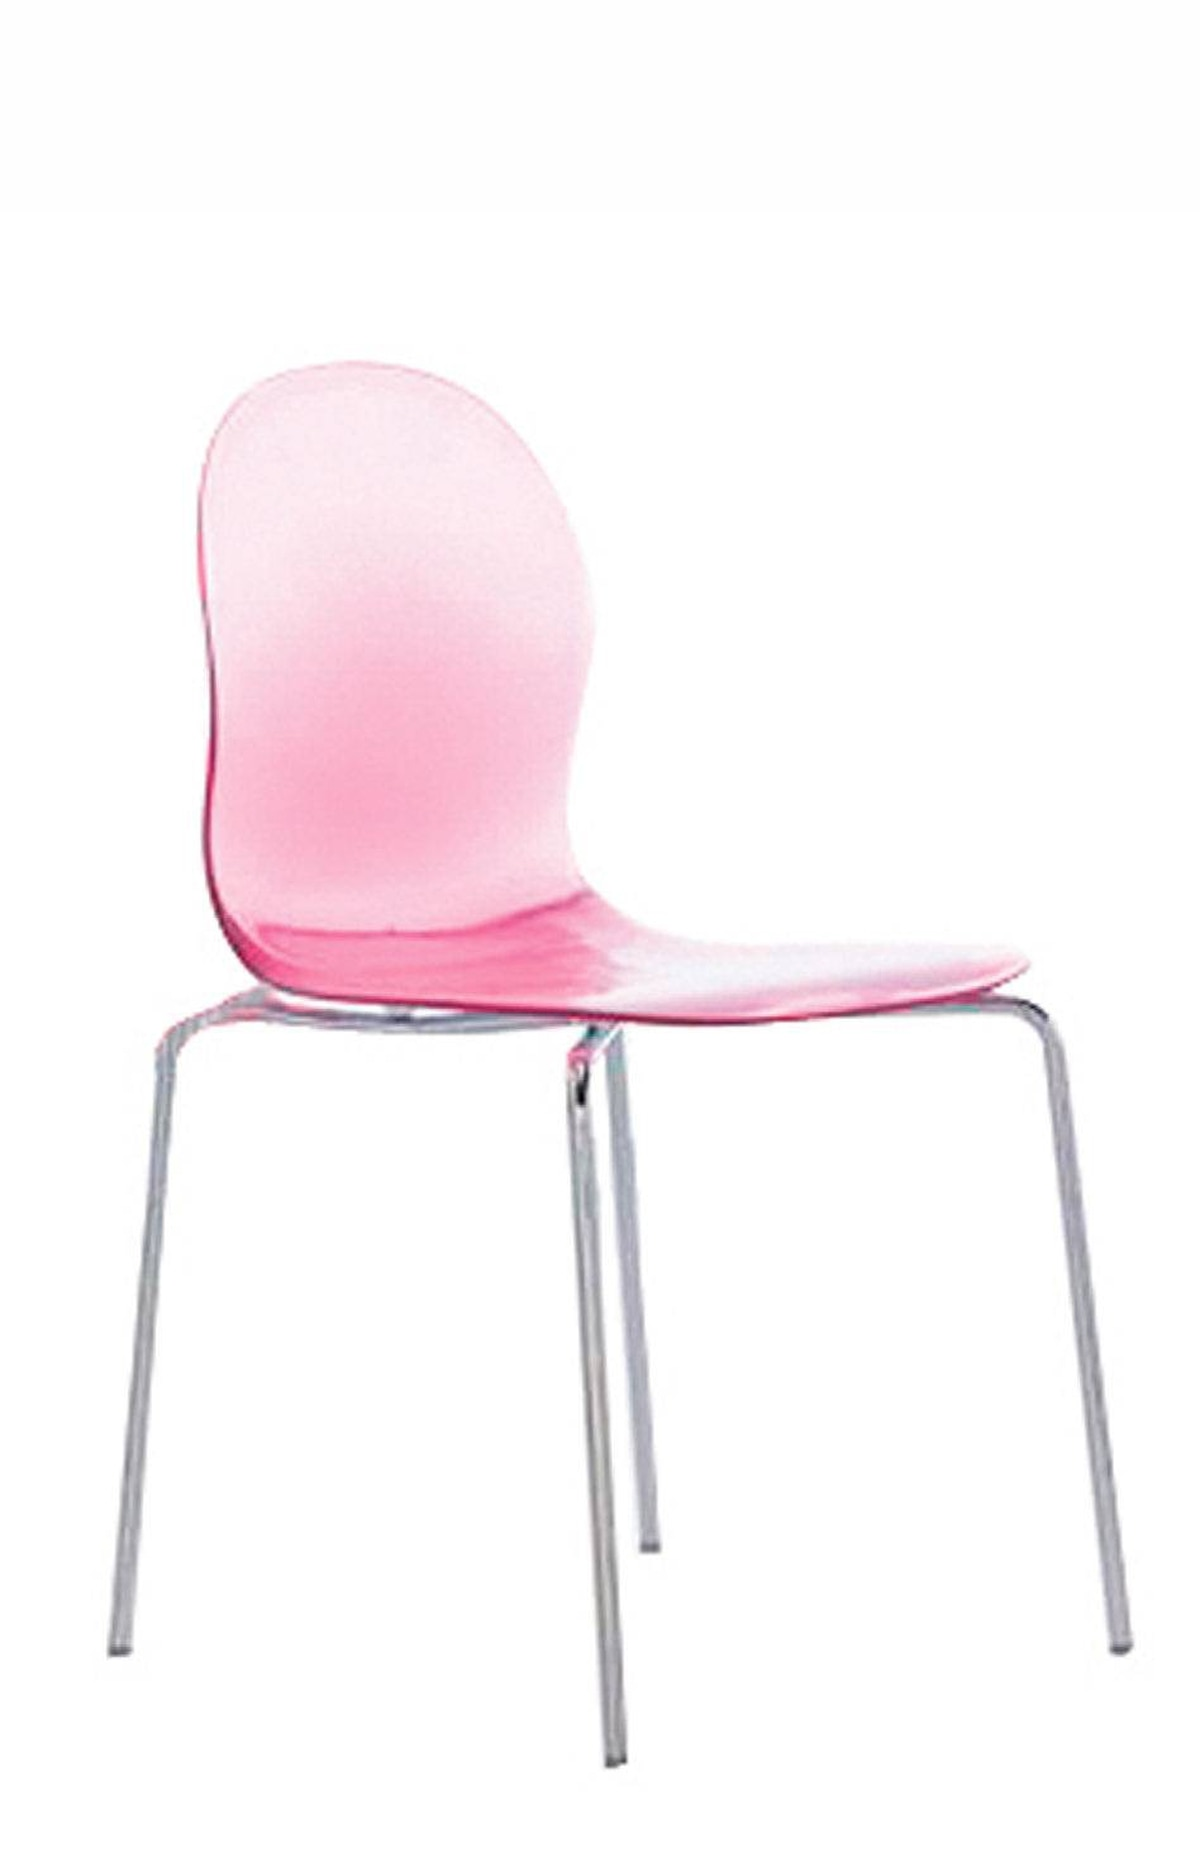 Lollipop chairs, $399 each at The Art Shoppe (www.theartshoppe.com).